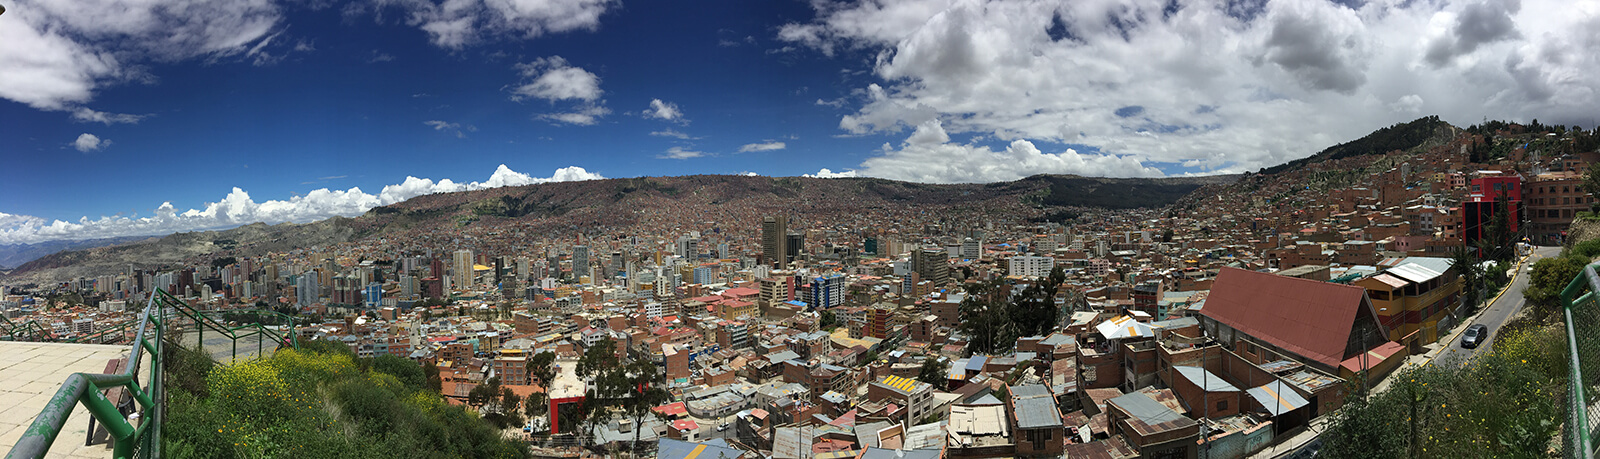 Panoramic shot of La Paz, the capital of Bolivia and highest capital city in the world